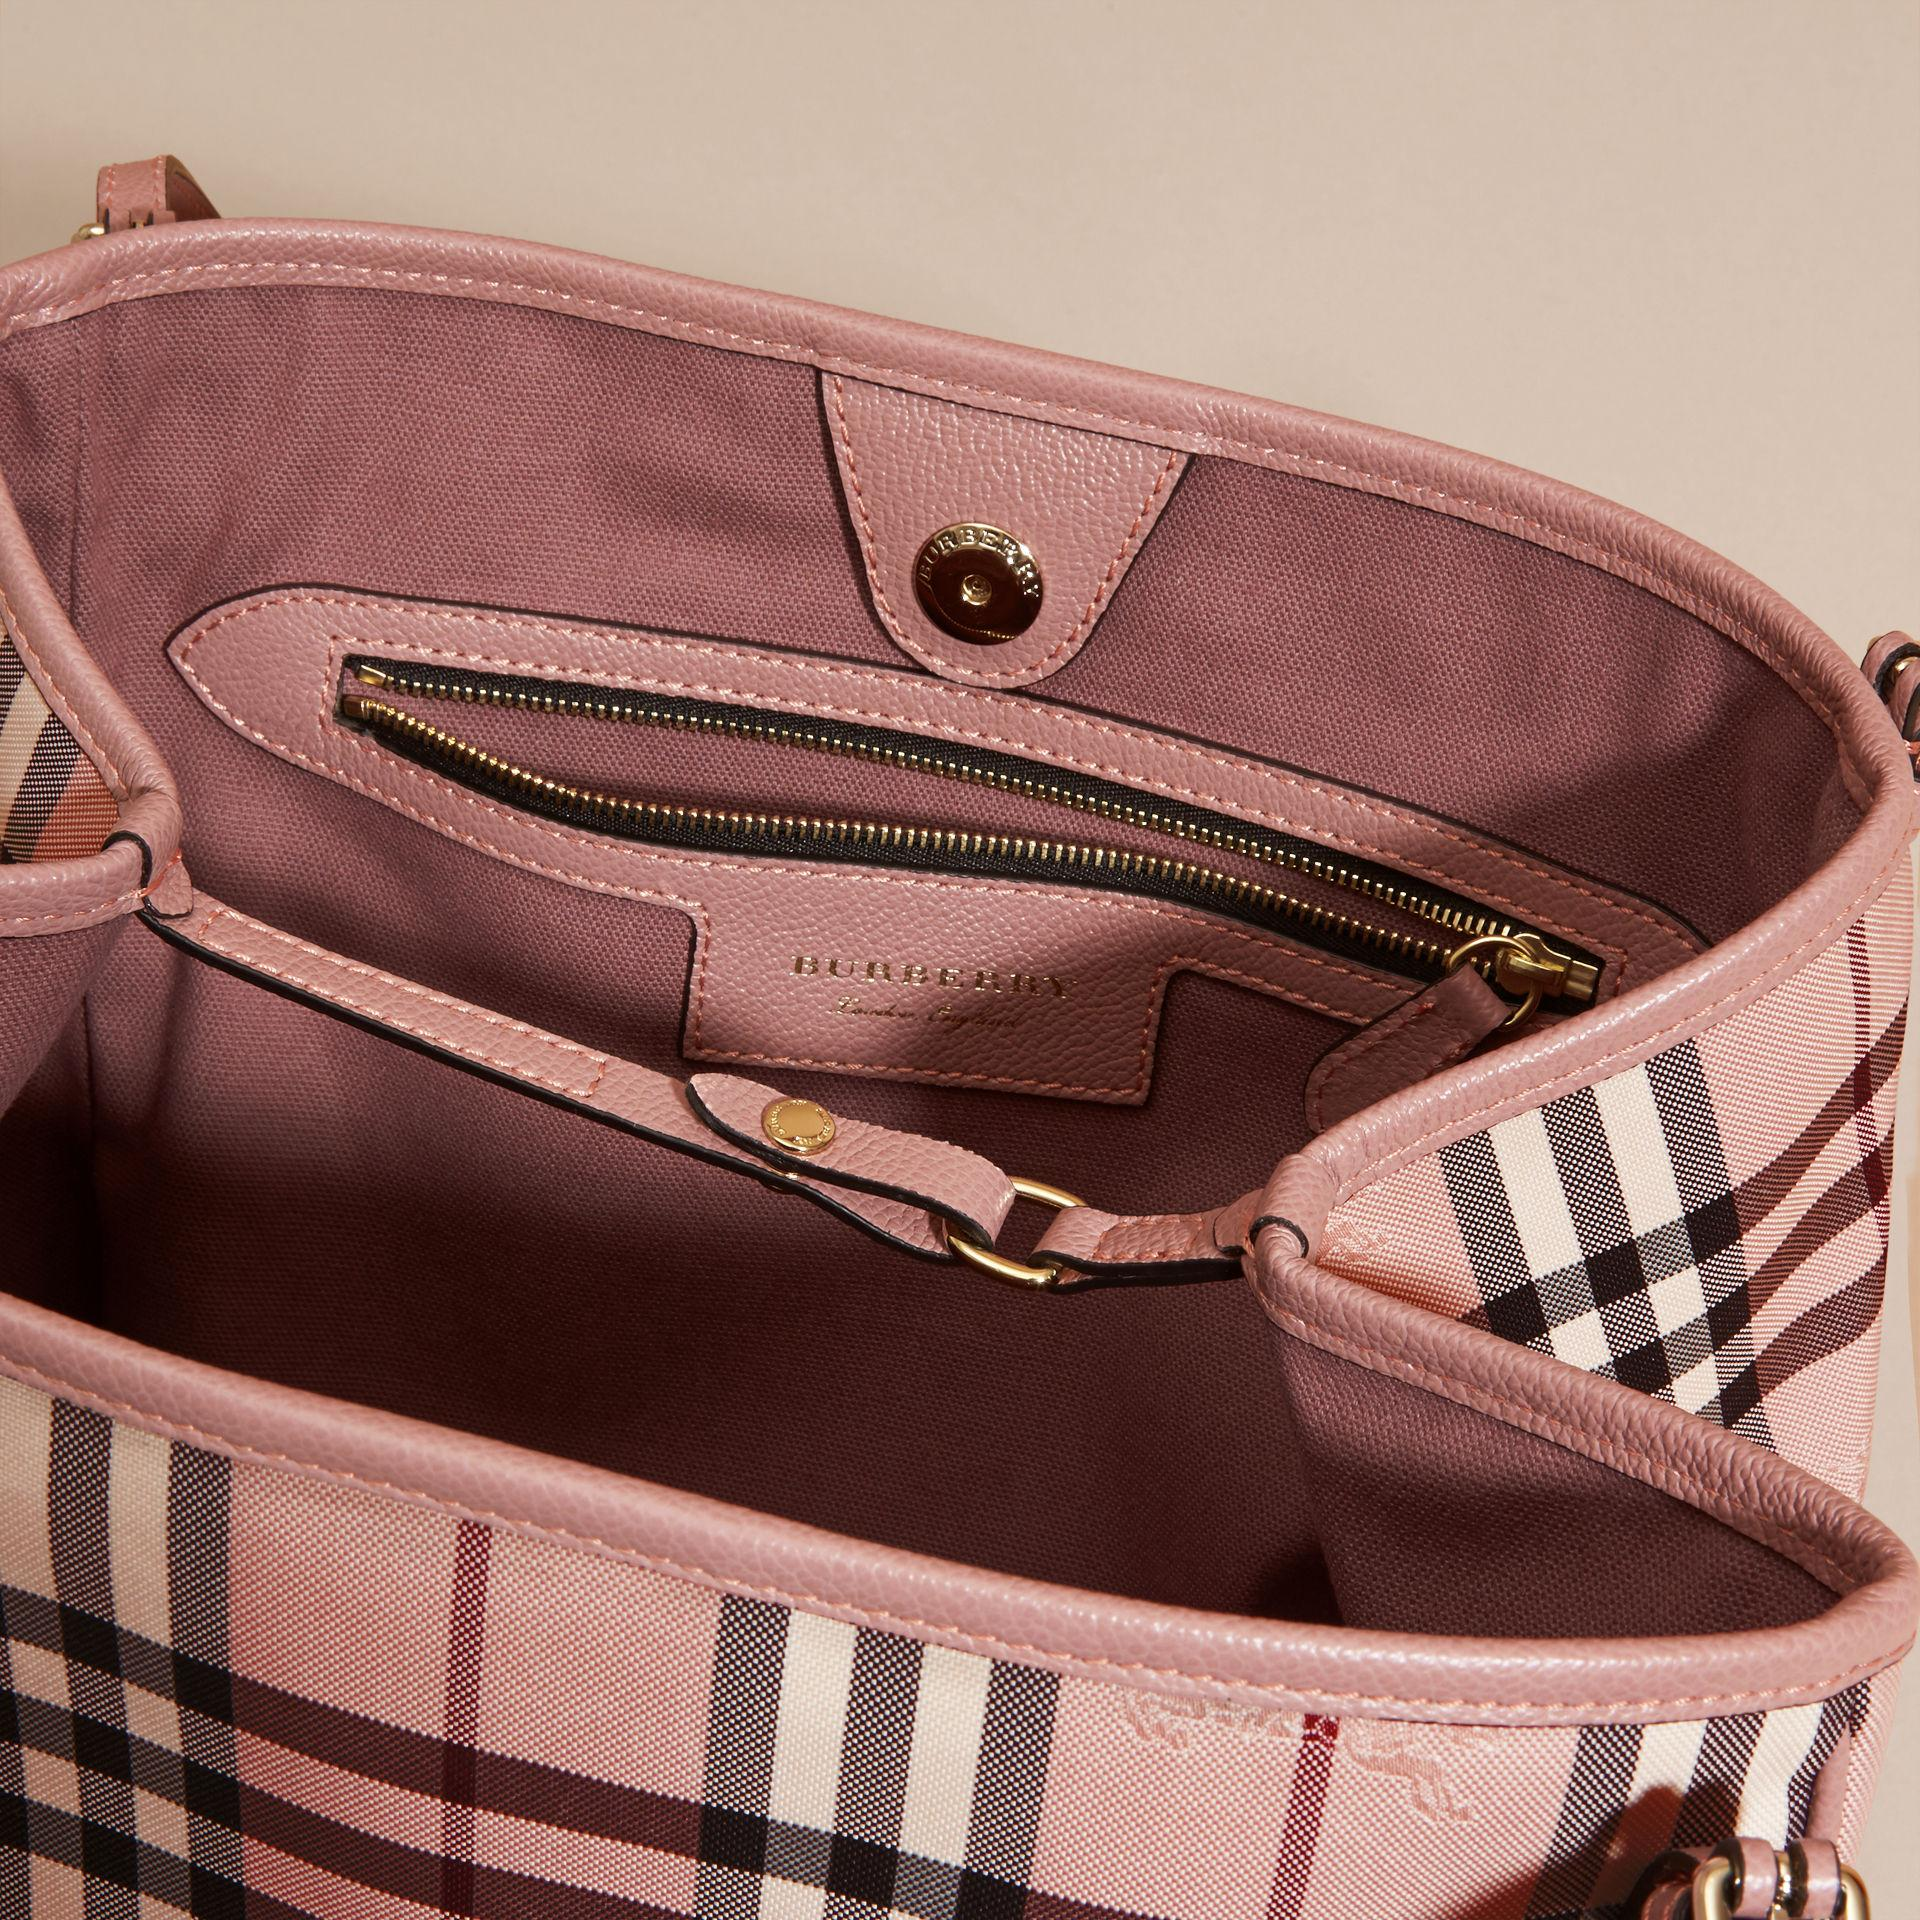 46c50ca5a3ab Lyst burberry the small canter in horseferry check ash rose dusty jpg  1920x1920 Canter ash rose